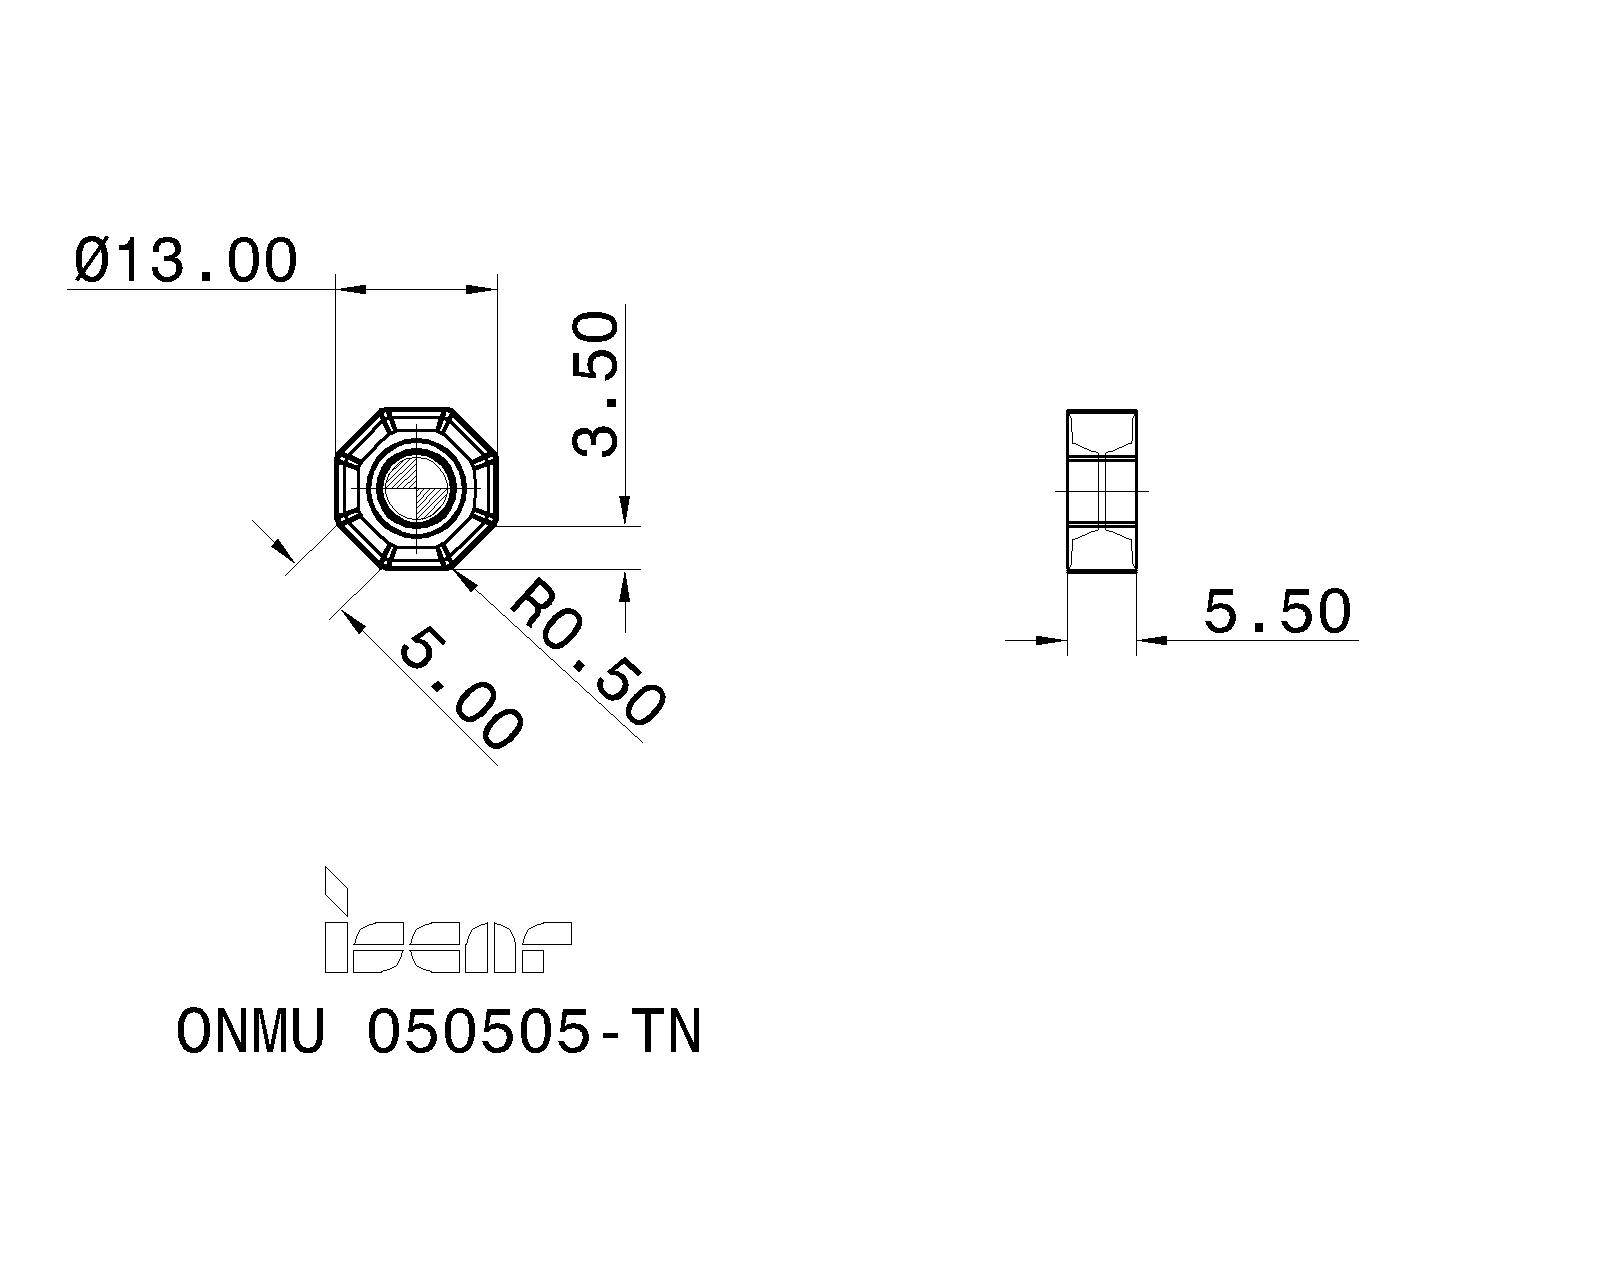 Iscar ONMU 050505-TN-MM IC4050 Double Octagon Face mill carbide insert 10pc